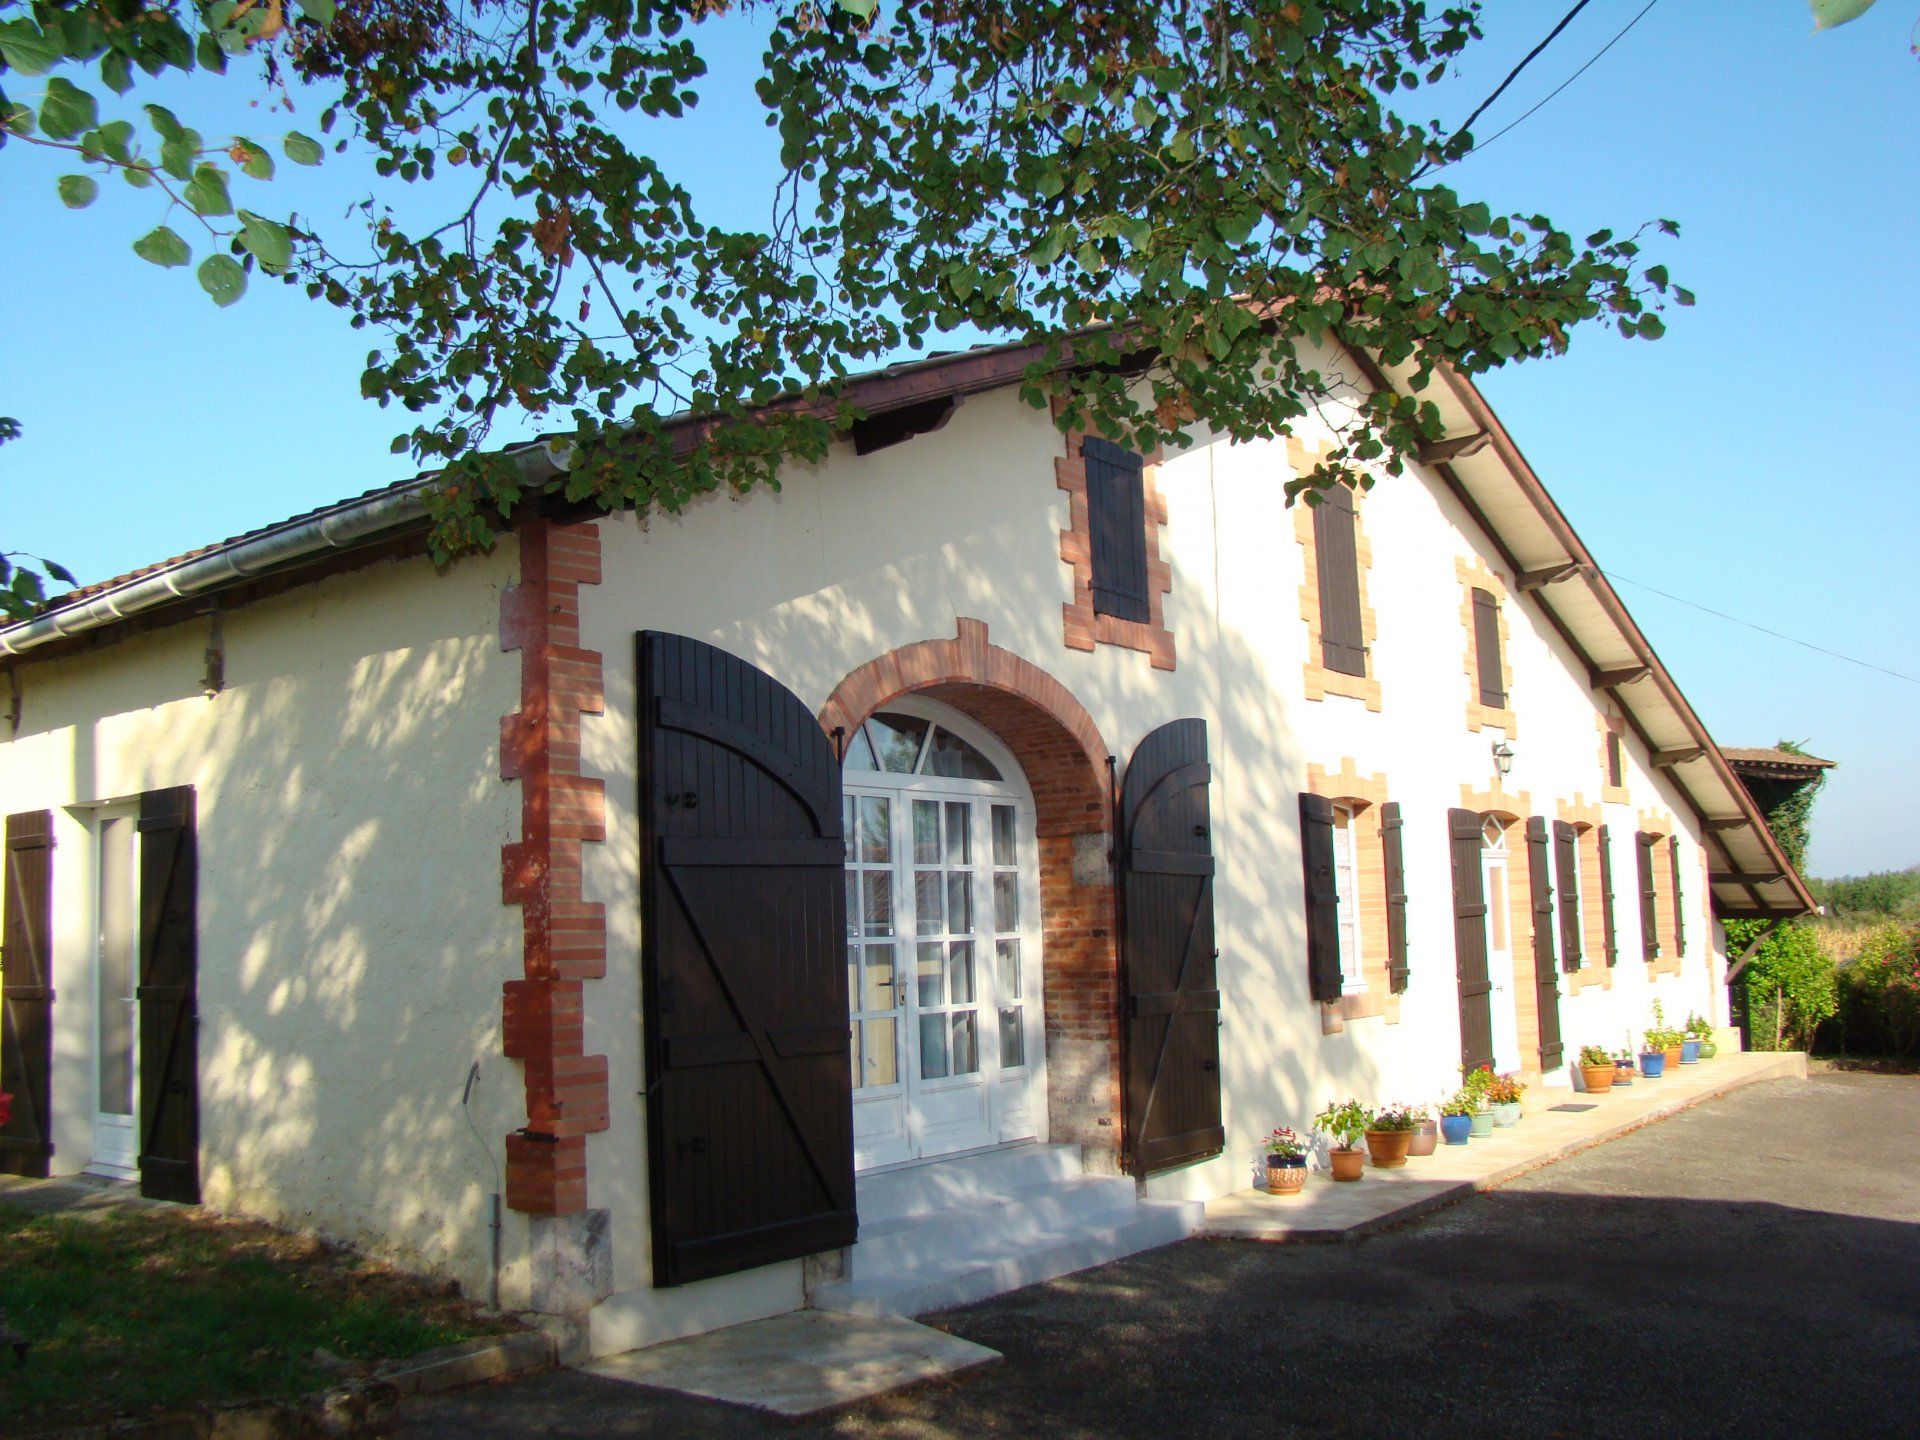 POMAREZ - Charming landaise farmhouse,set in almost 3 hectares of land,perfect for equestrian projec